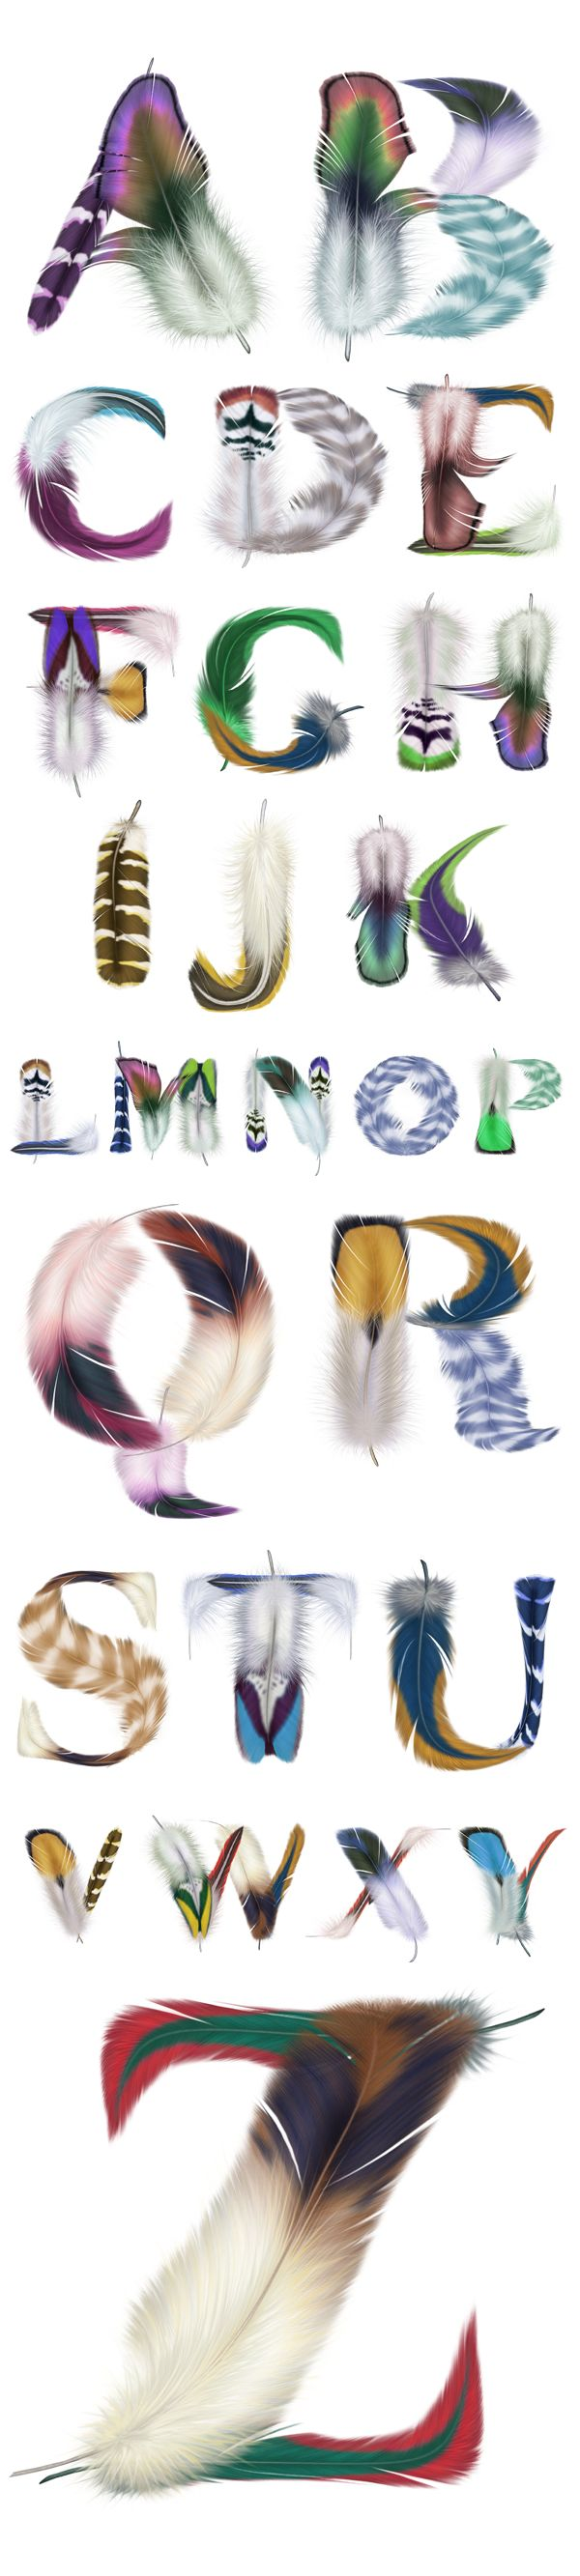 A Font Made From Beautiful Bird Feathers - DesignTAXI.com